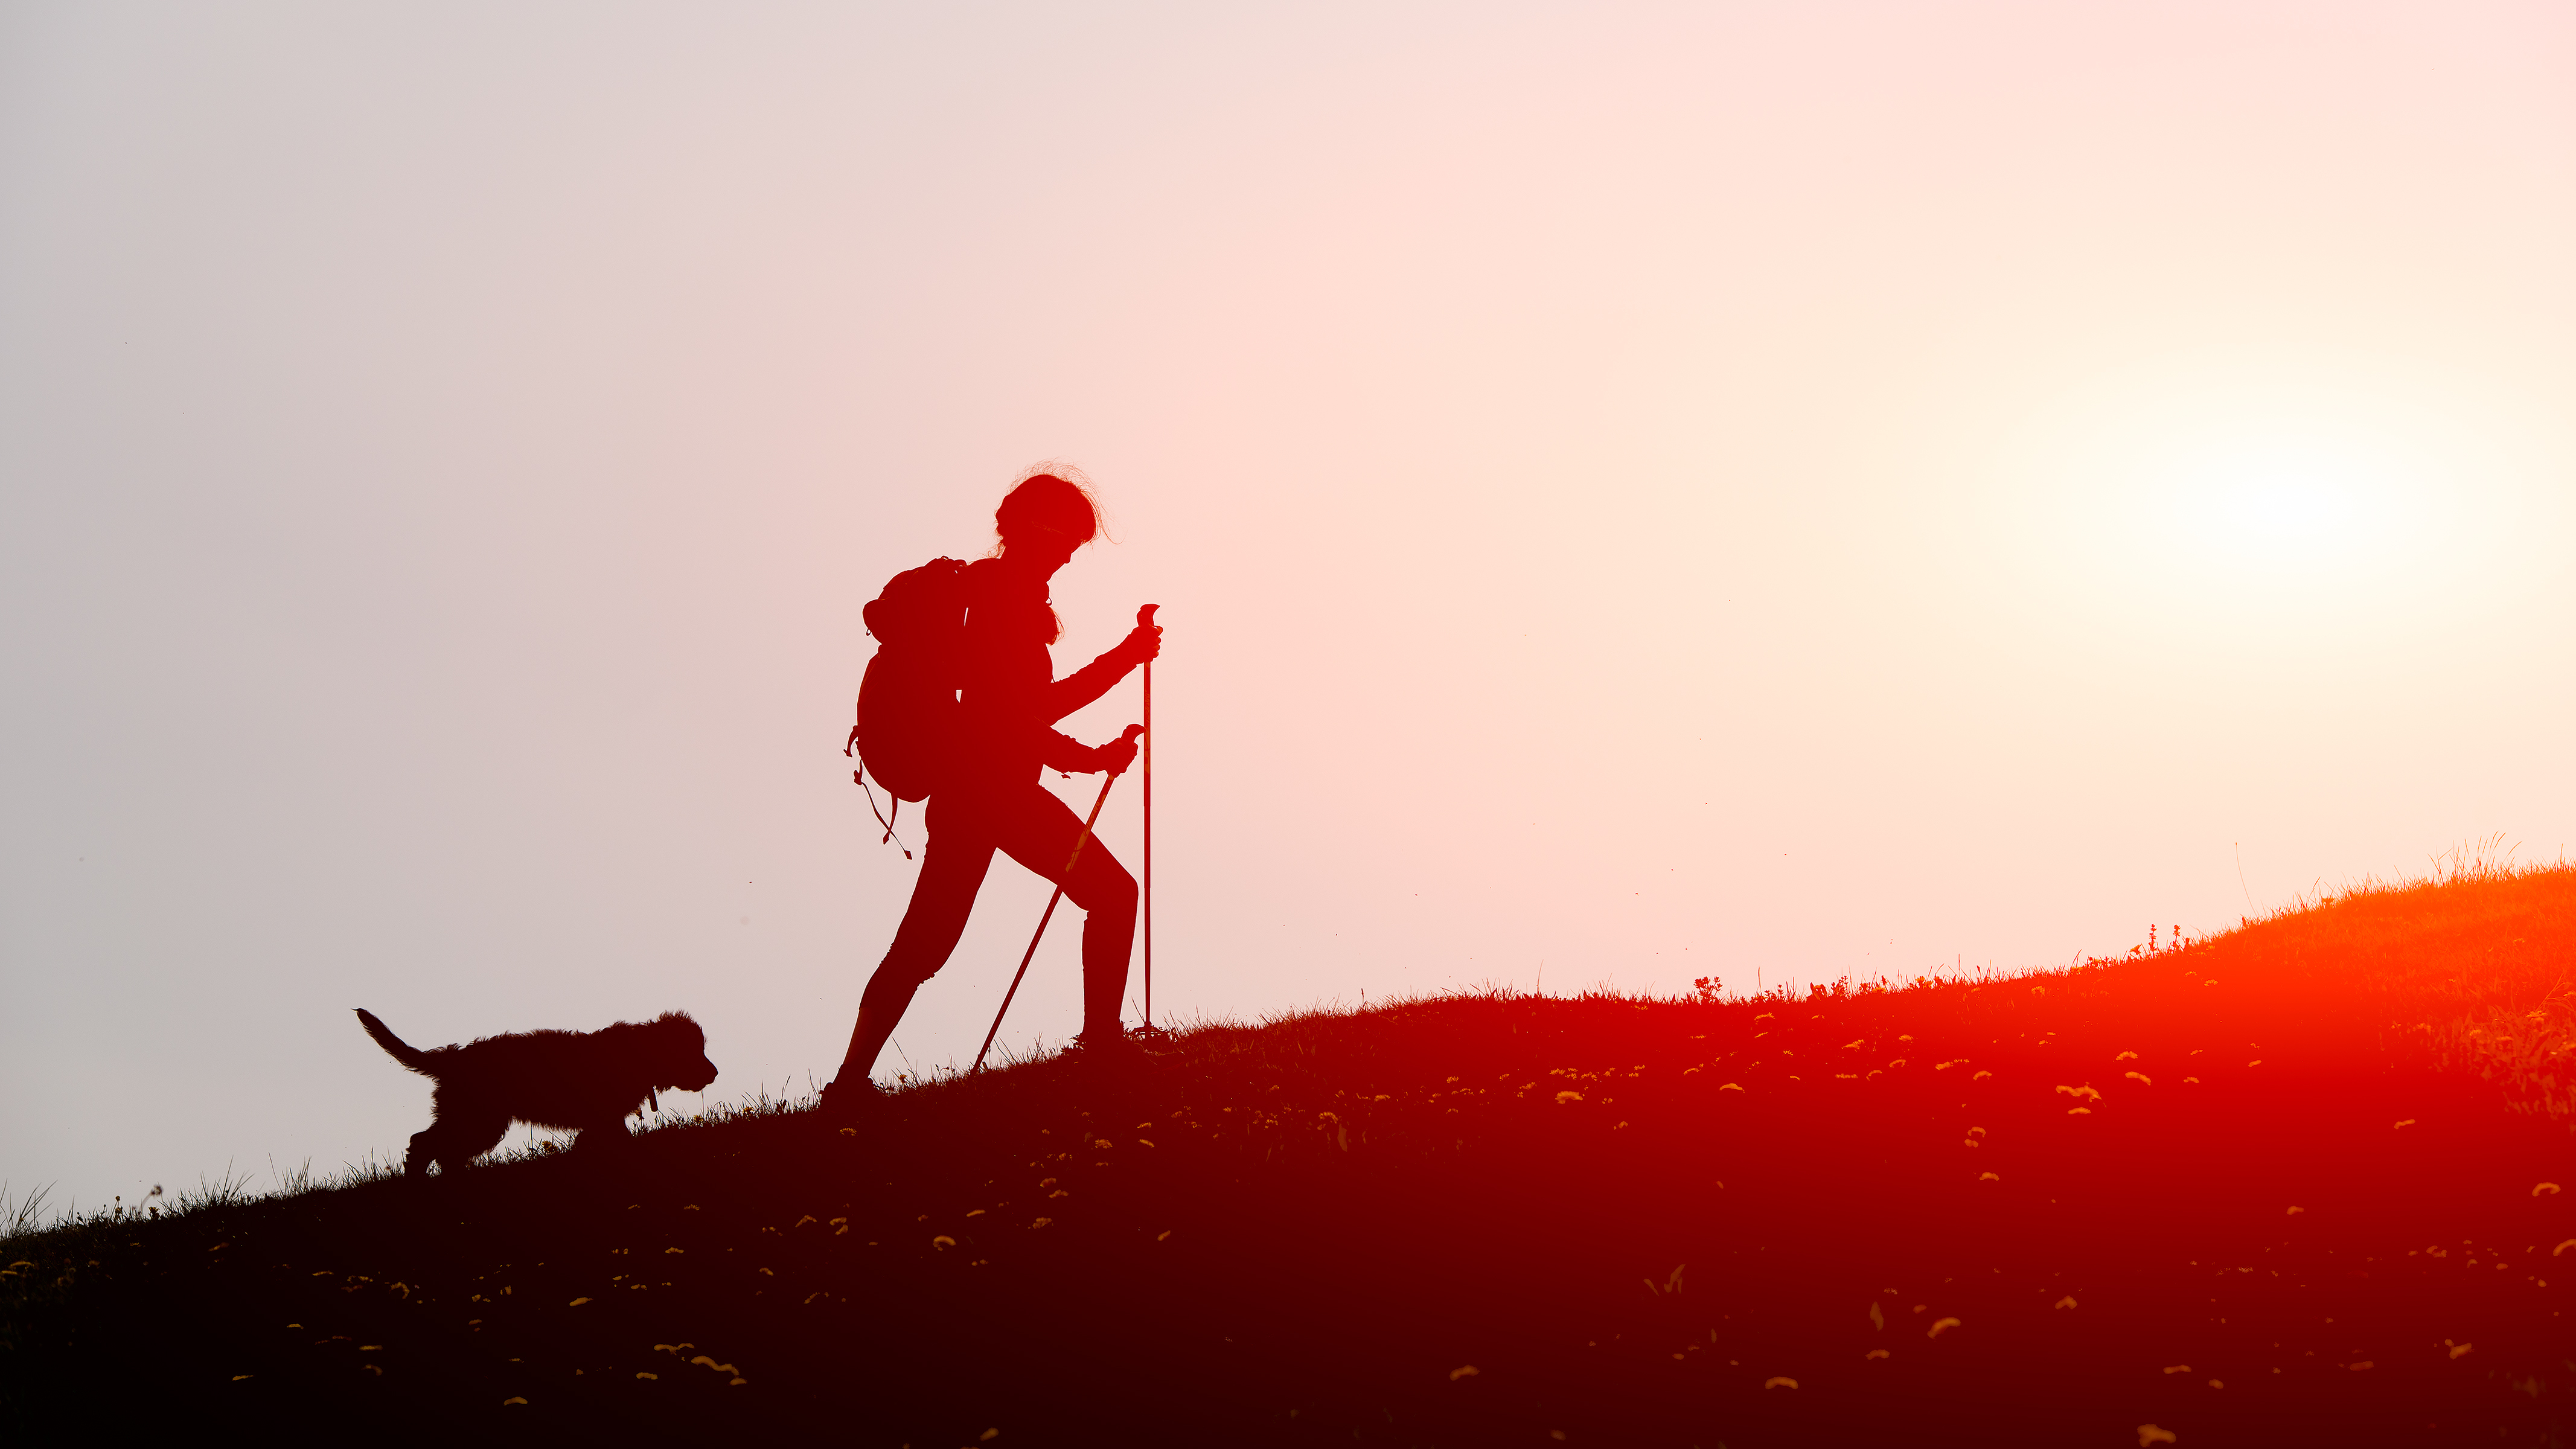 CANCELED - Hiking and Walking Safely with Your Dog